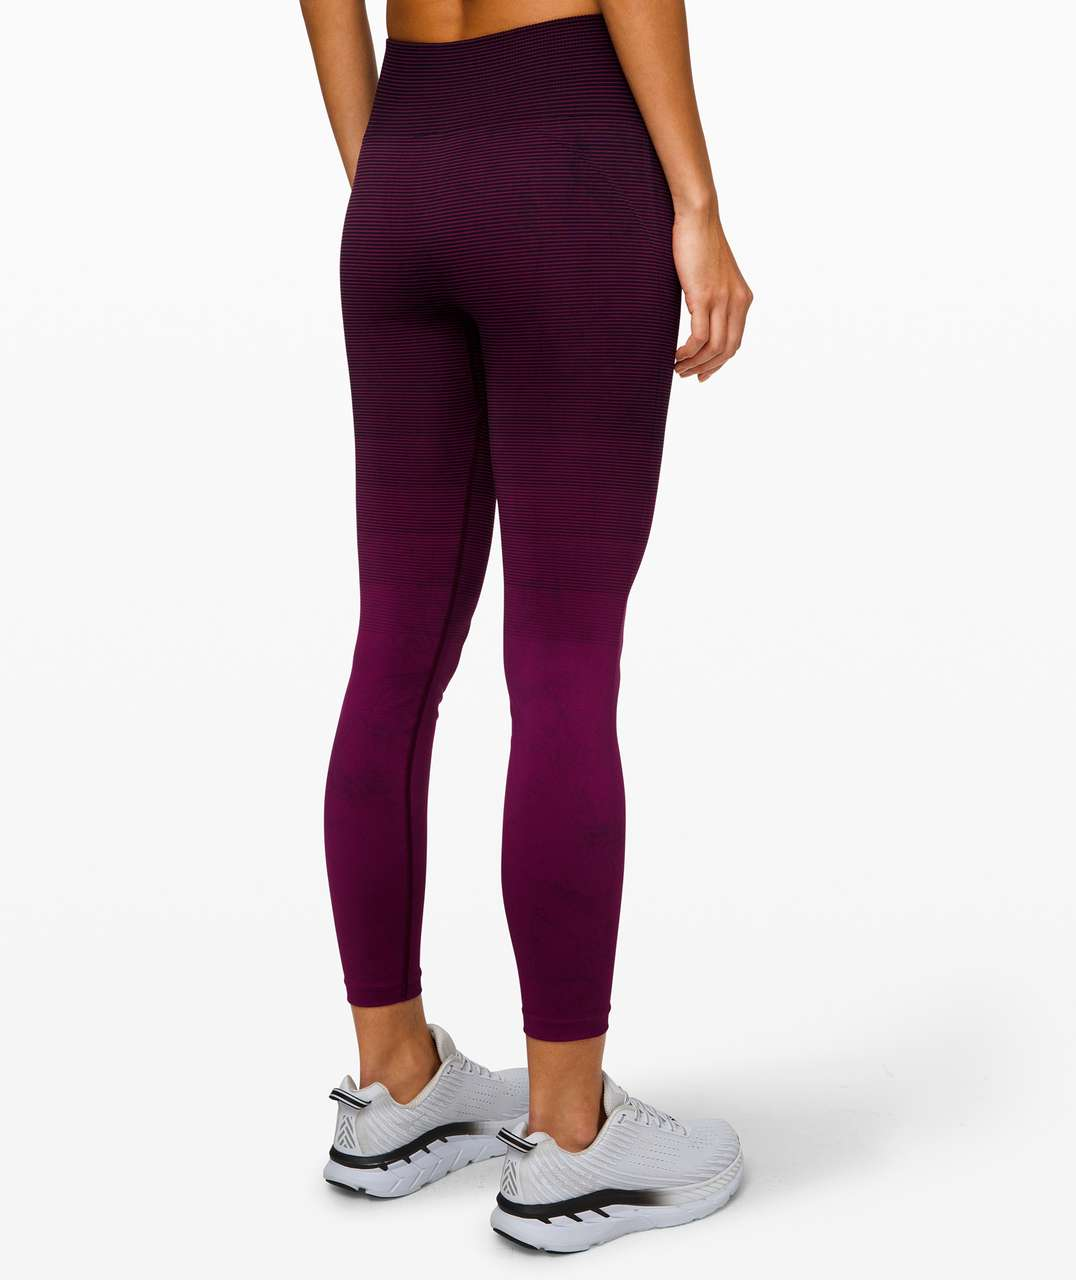 Lululemon Ebb to Train Tight *Wash - Marvel / Black / Black